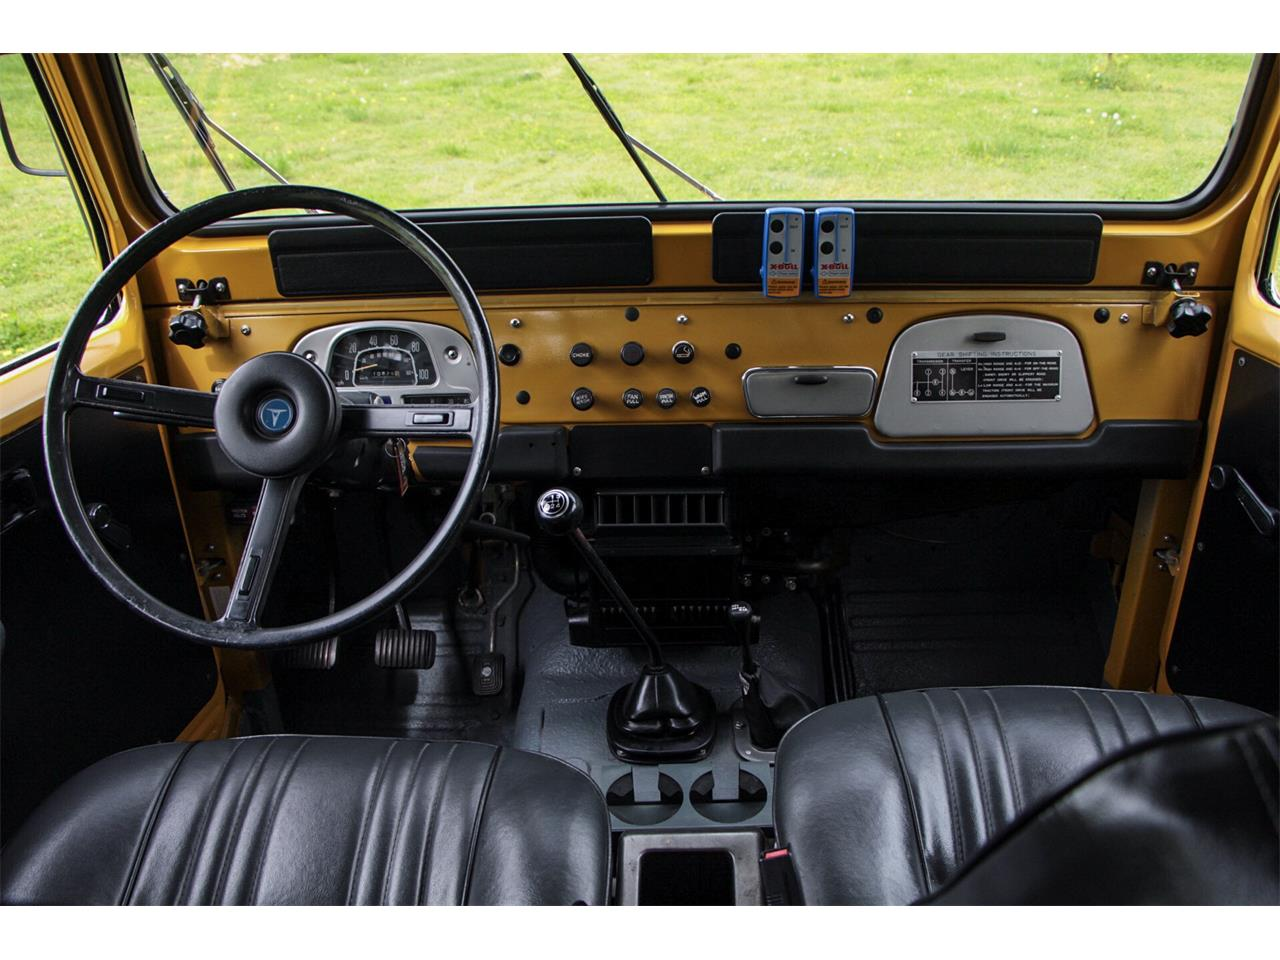 Large Picture of '77 Toyota Land Cruiser FJ40 located in Marietta Georgia Offered by Classic AutoSmith - PW6P